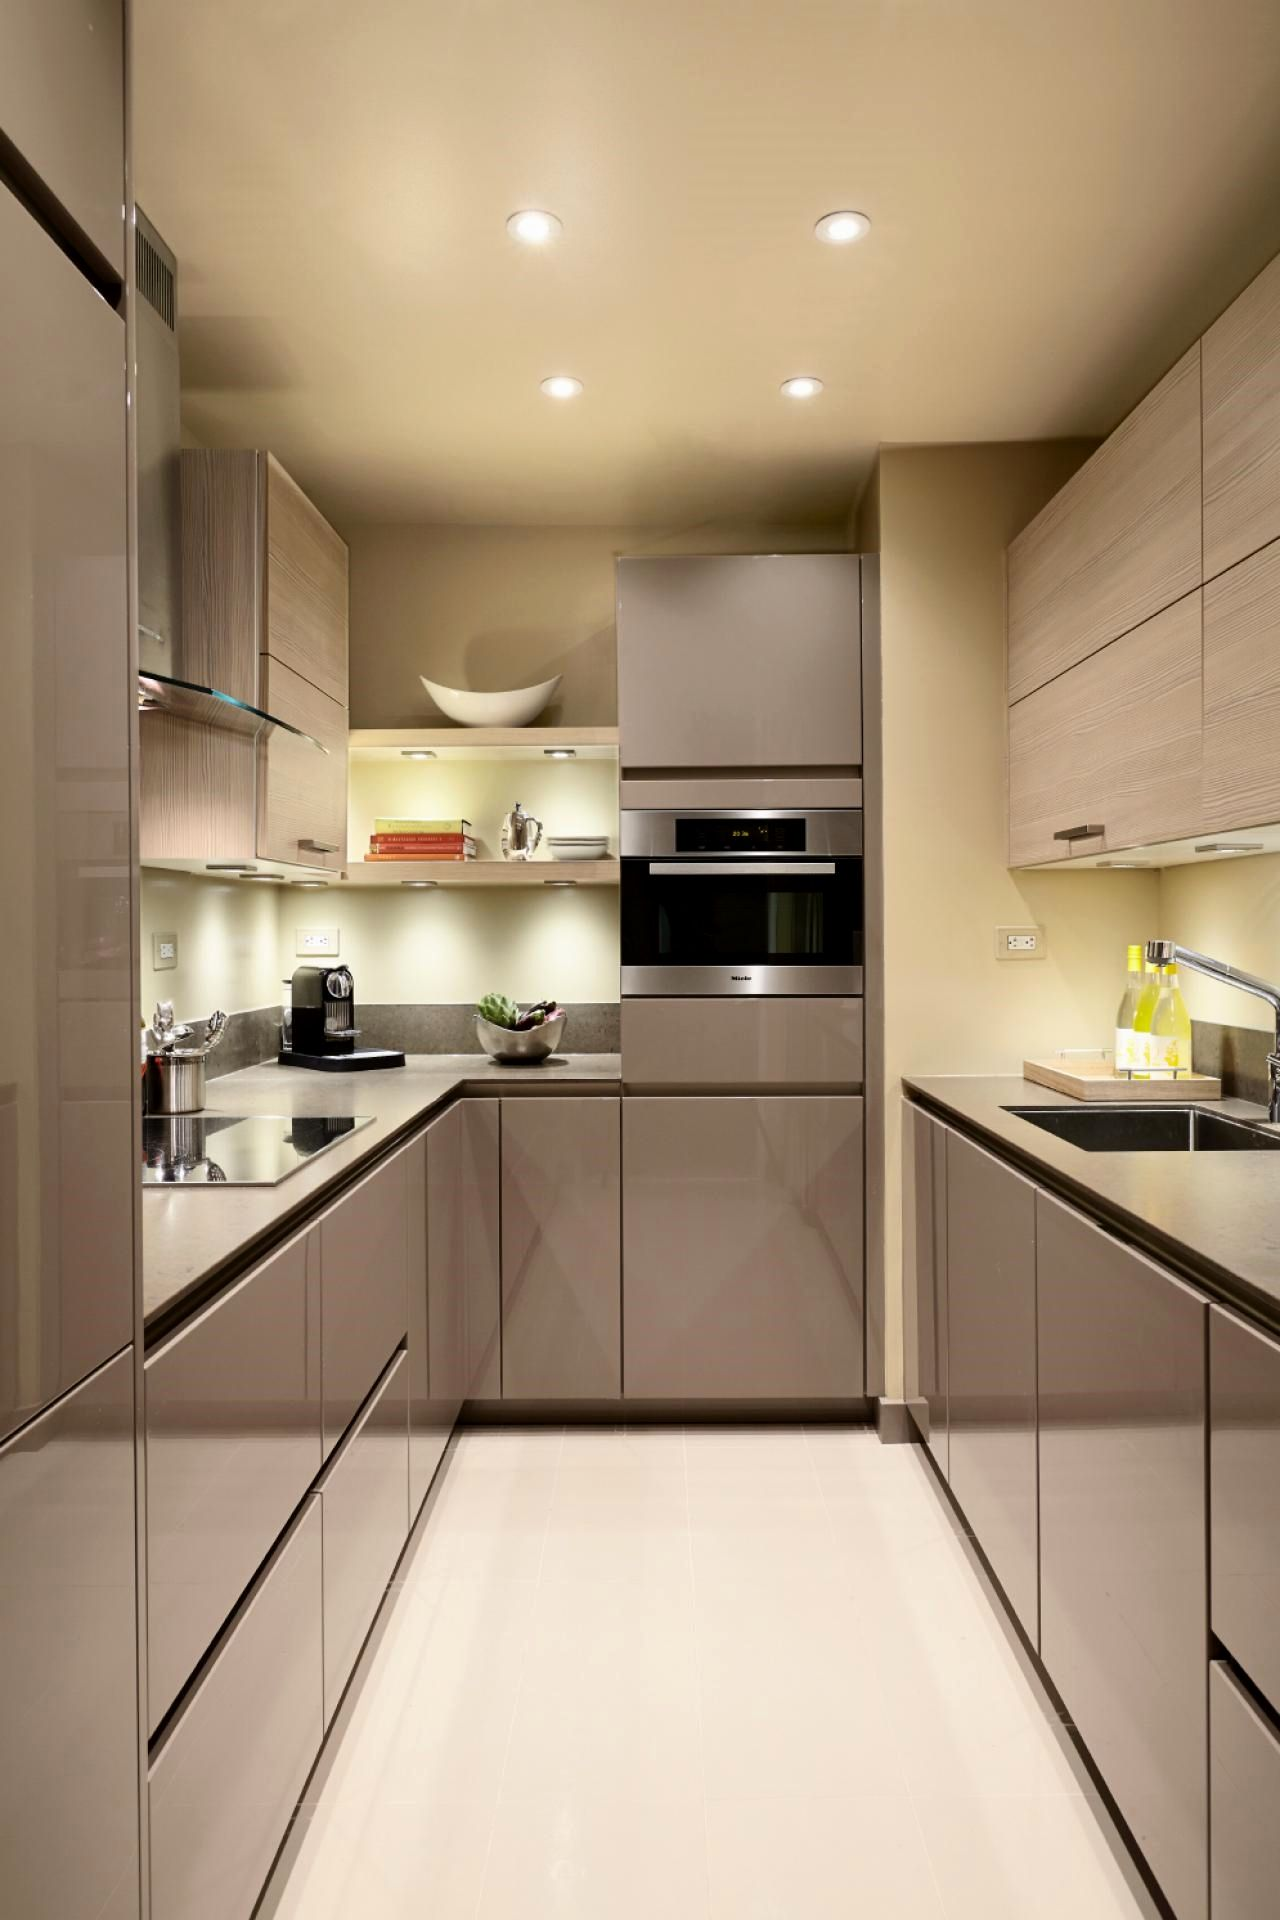 Awesome Kitchen Lighting Fixture Ideas To Accent The Spa In Your